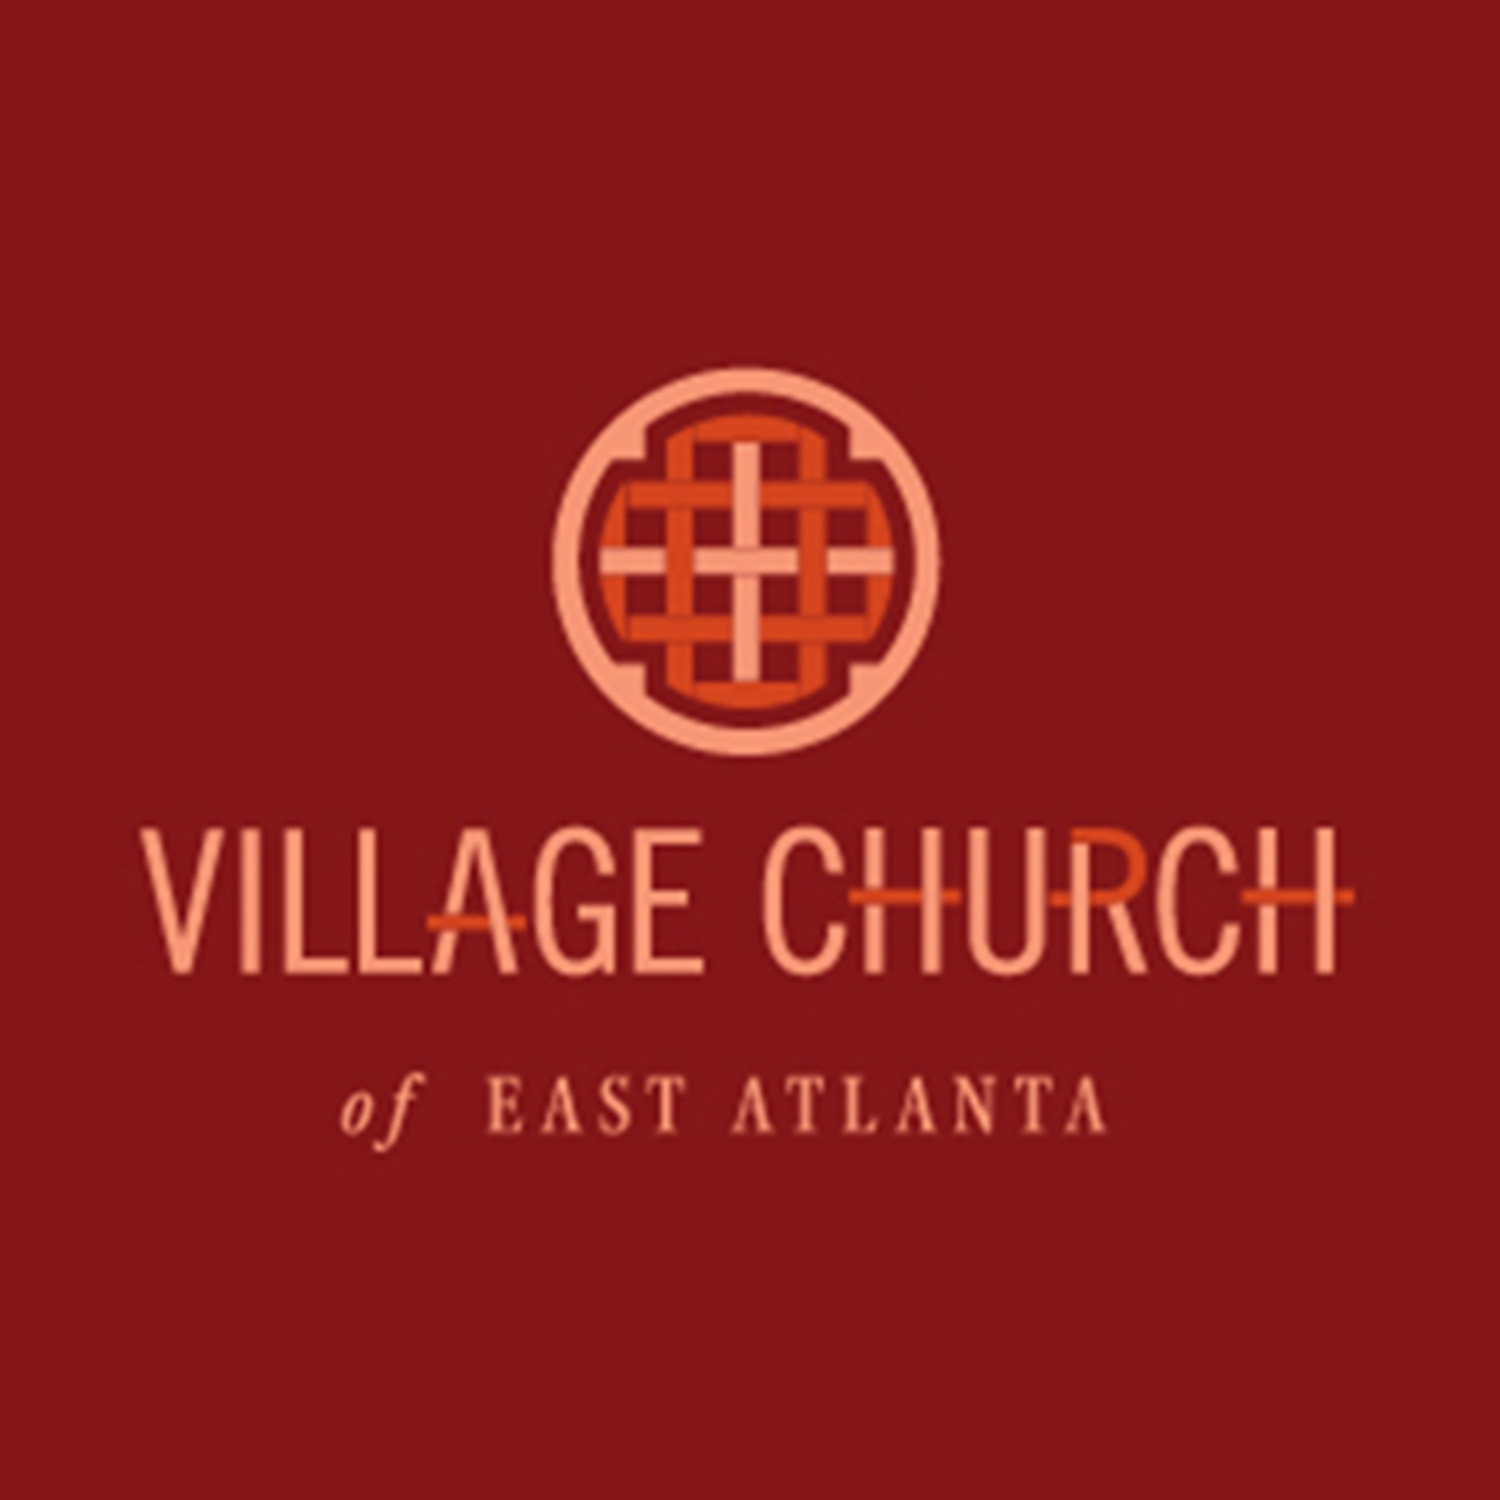 sermons - Village Church of East Atlanta